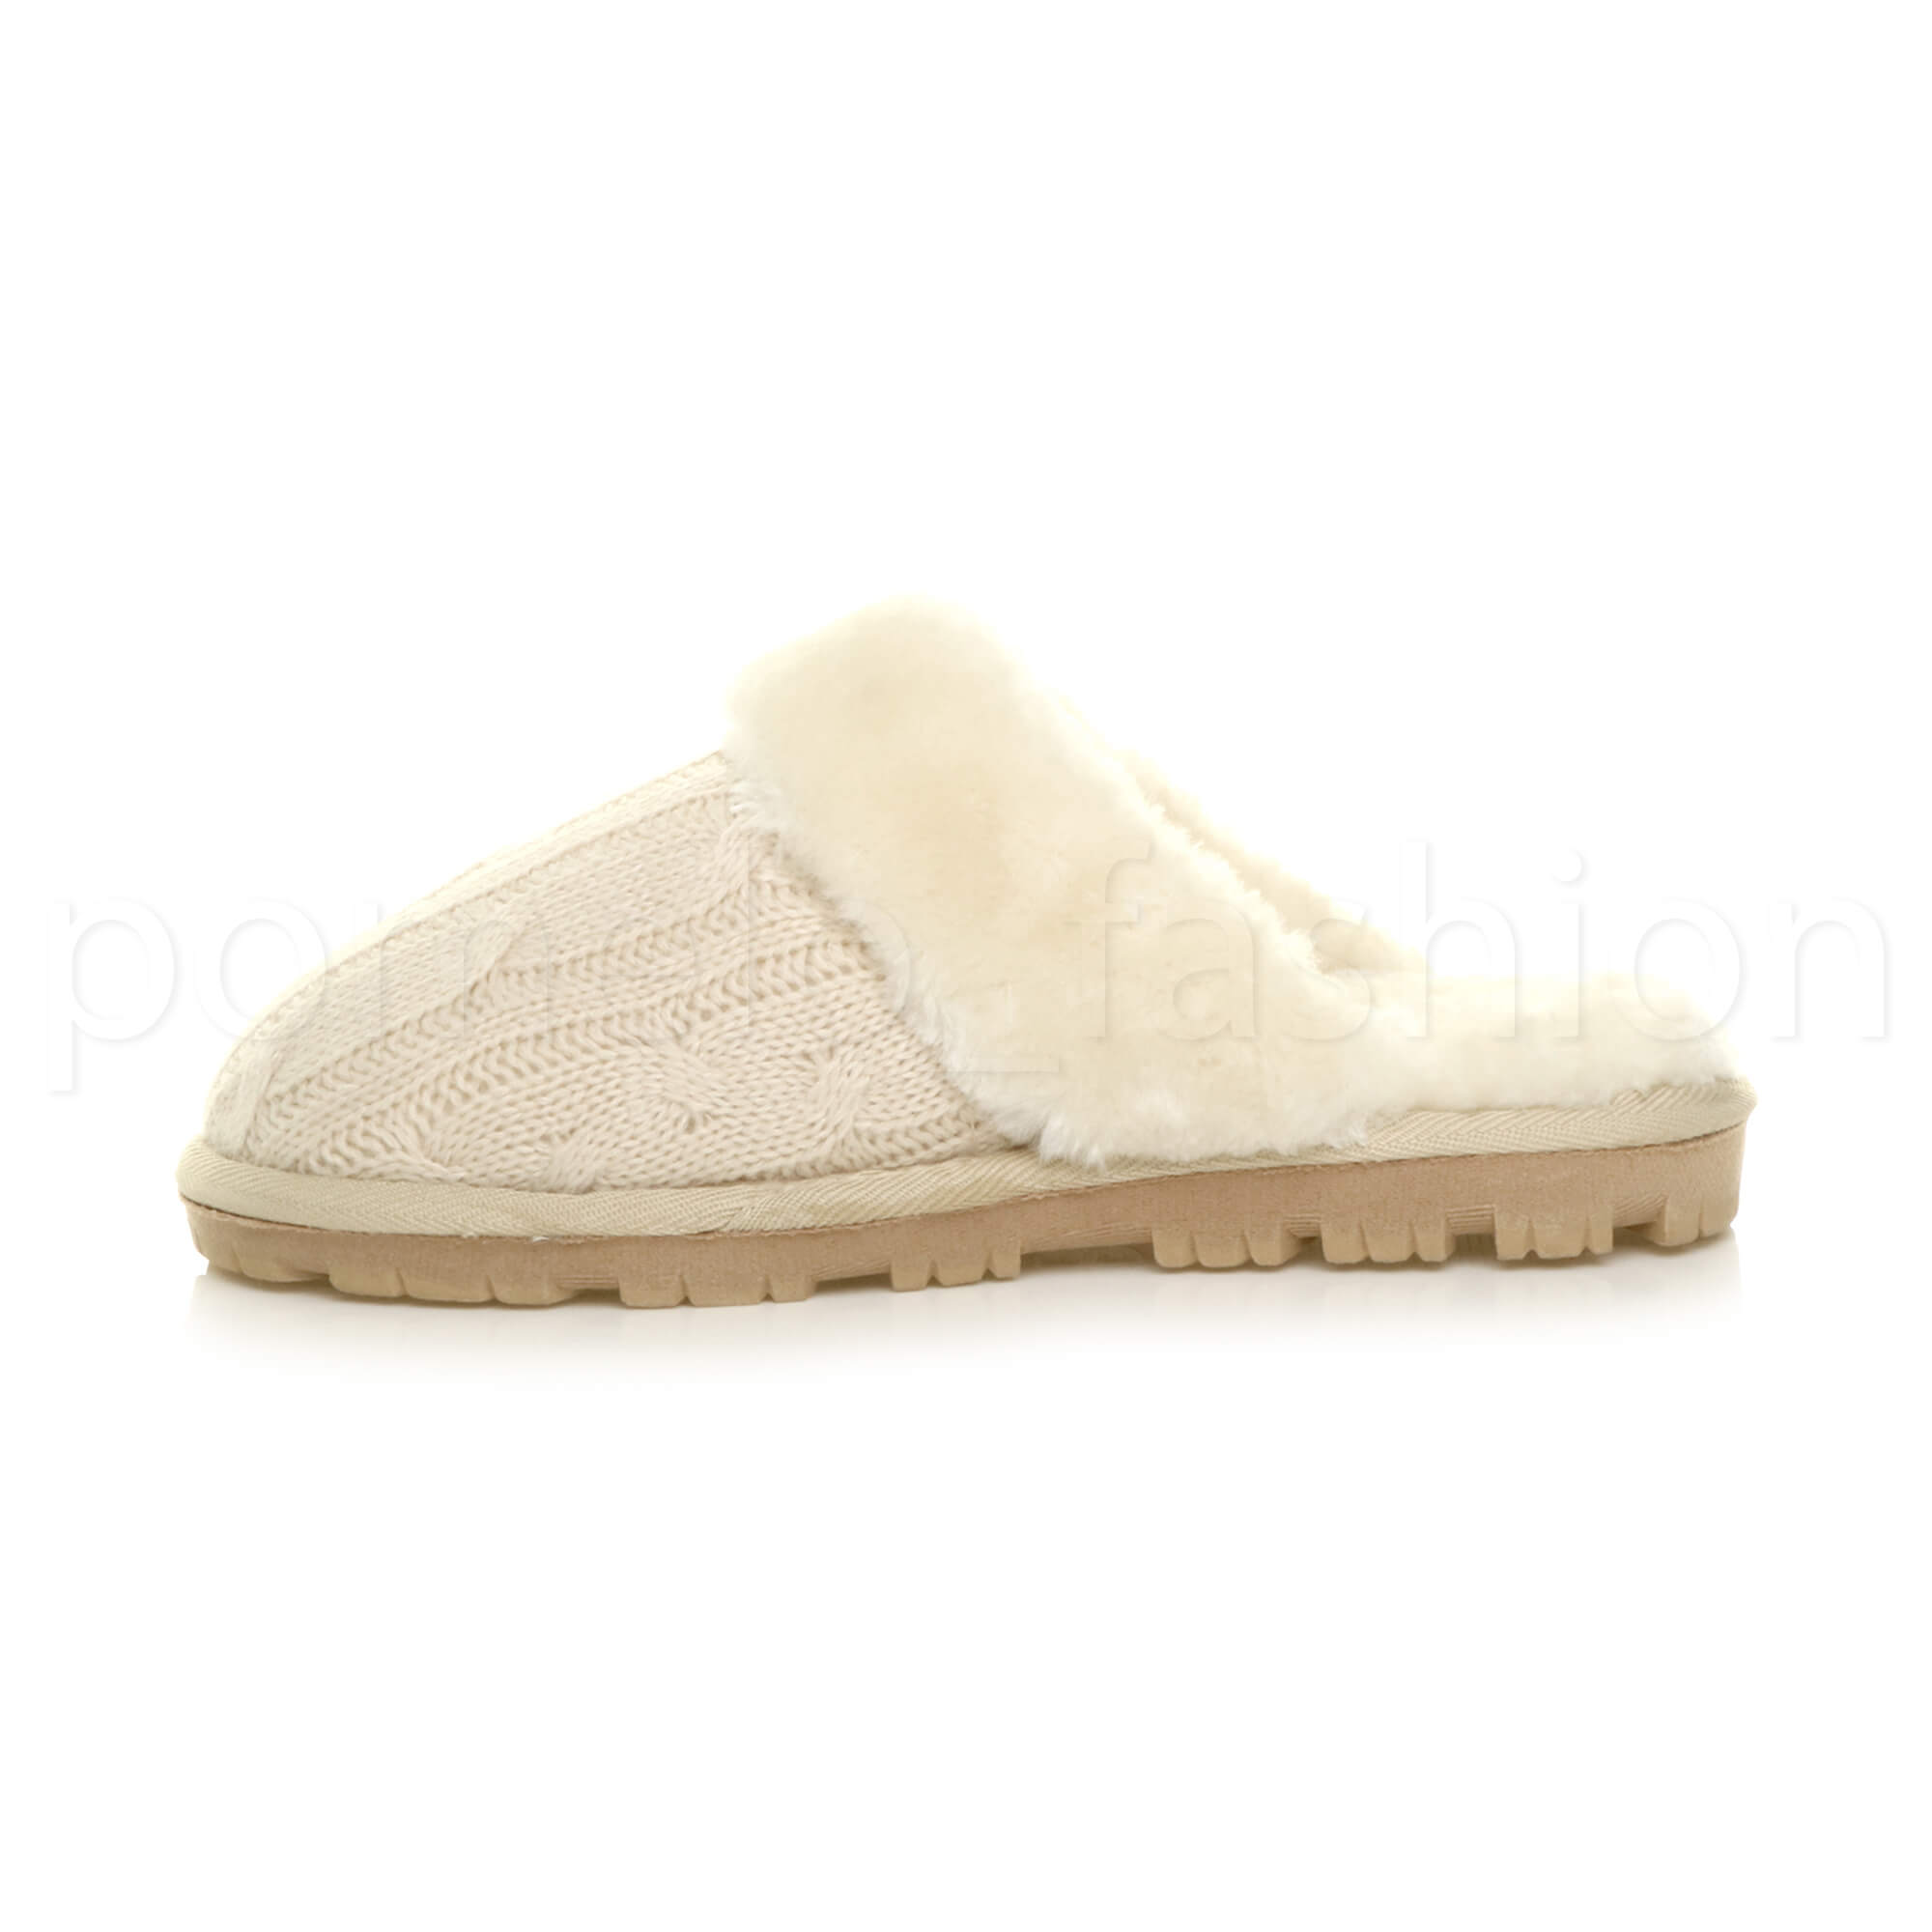 WOMENS-LADIES-FLAT-FUR-LINED-COMFORTABLE-WINTER-MULES-SLIPPERS-HOUSE-SHOES-SIZE thumbnail 11